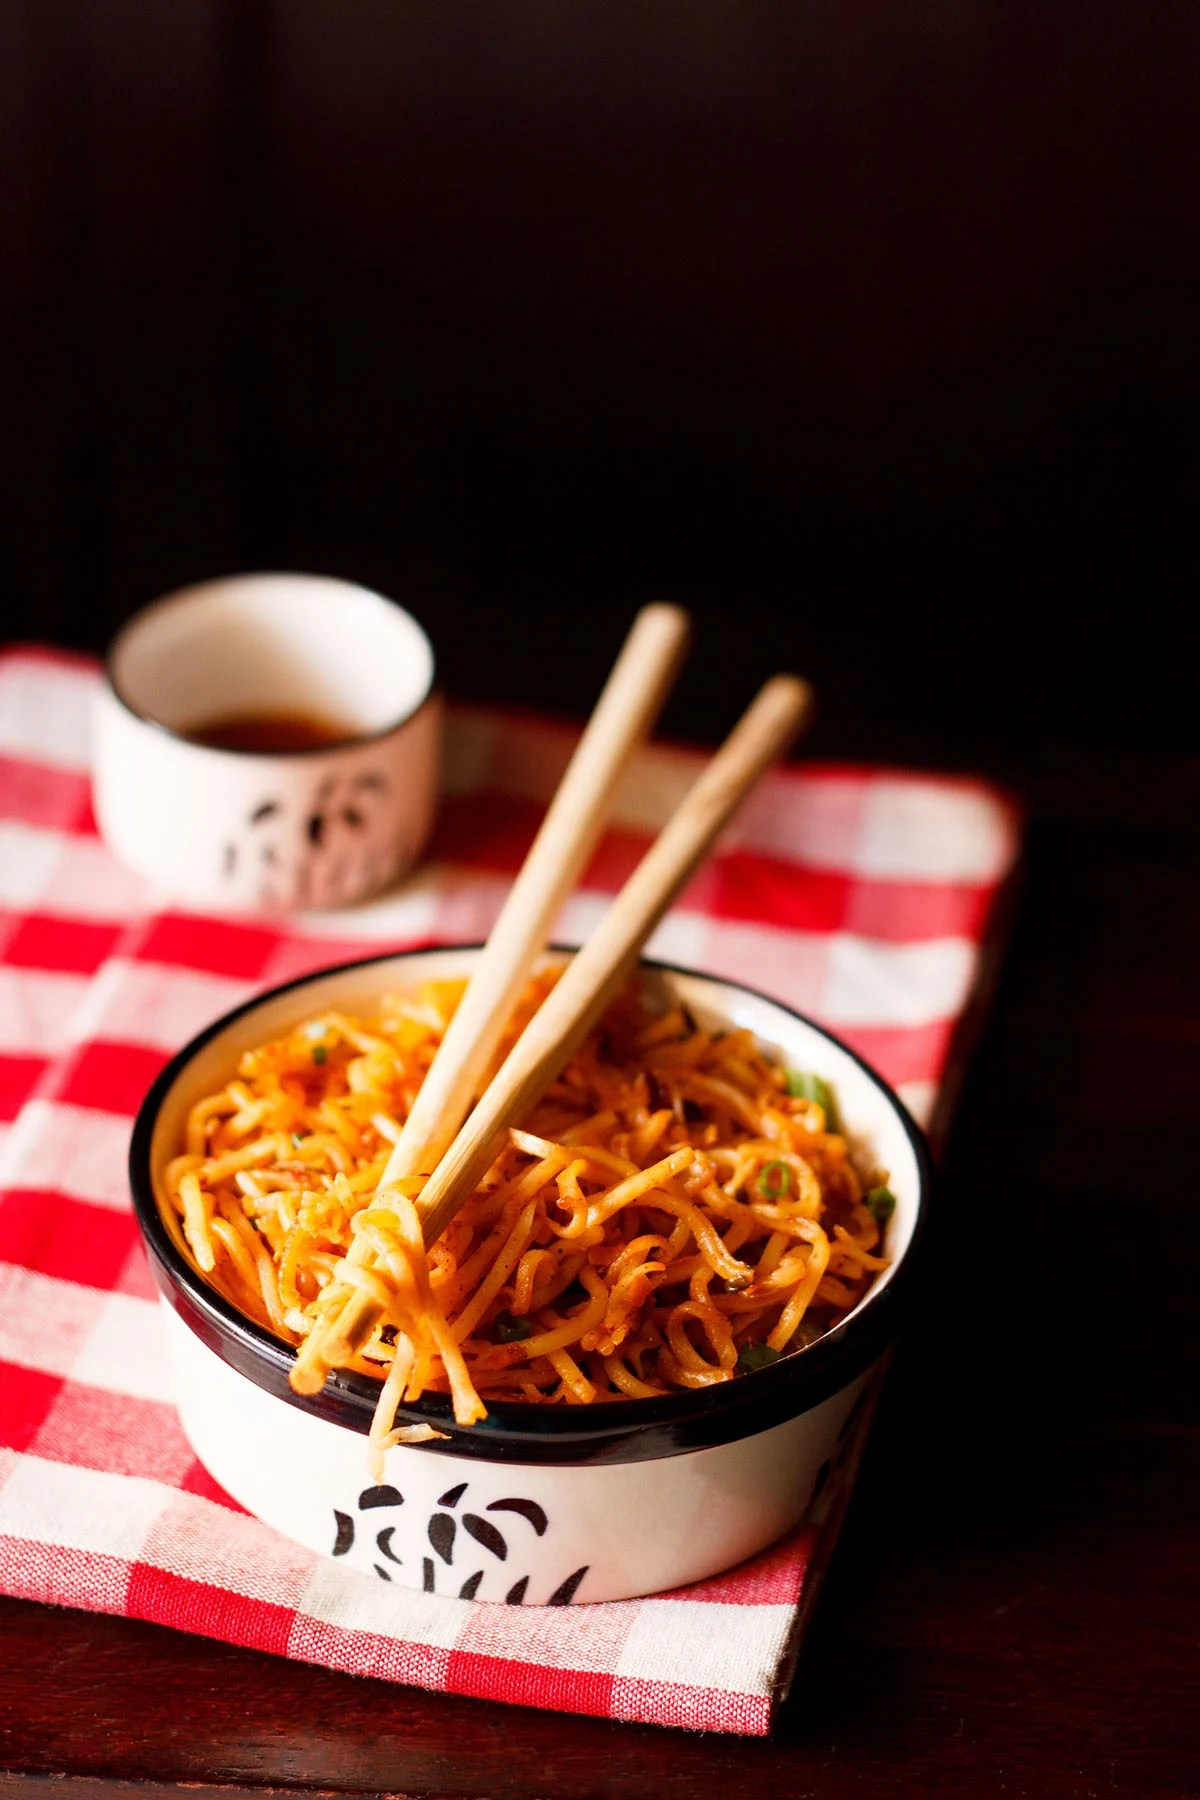 schezwan noodles in a black and cream bowl with a few noodle strands held between bamboo chopsticks placed on top of bowl on a checkered red and white napkin